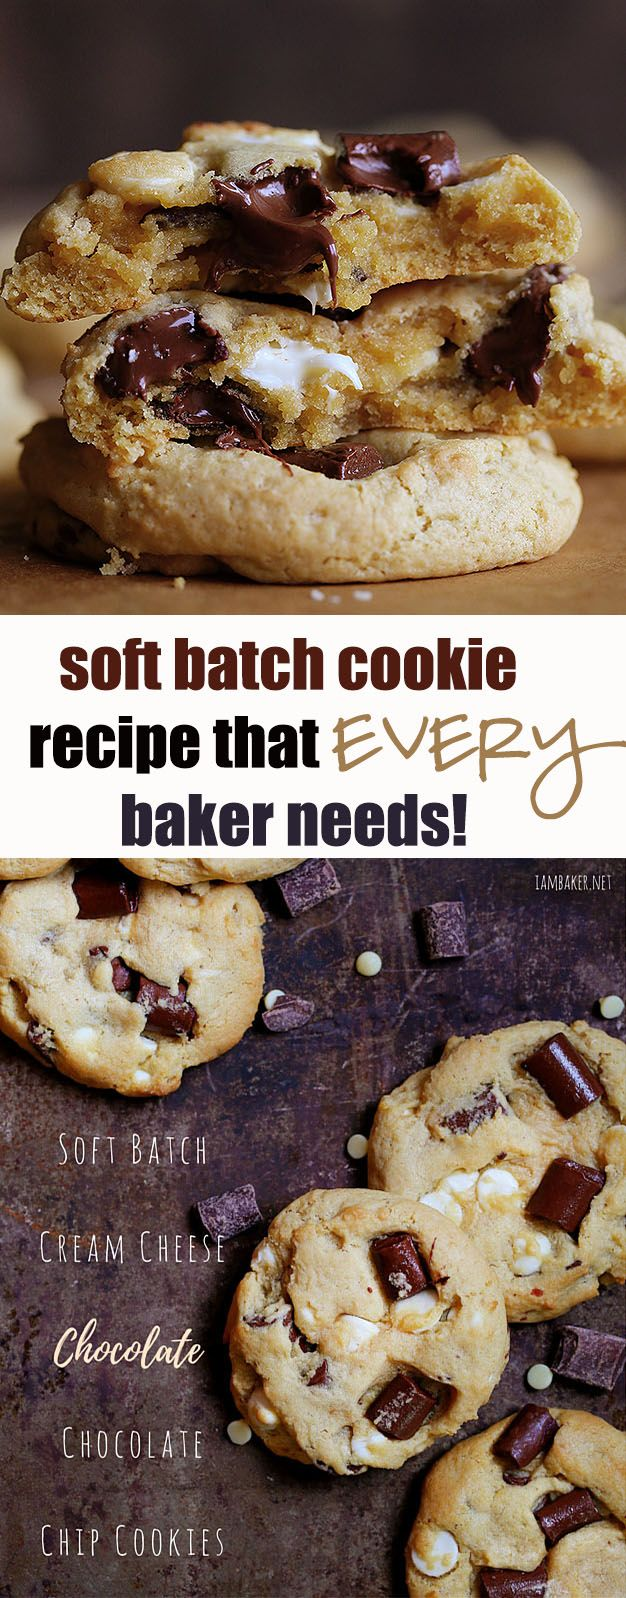 2136 best i am baker blog images on Pinterest | Dessert recipes ...